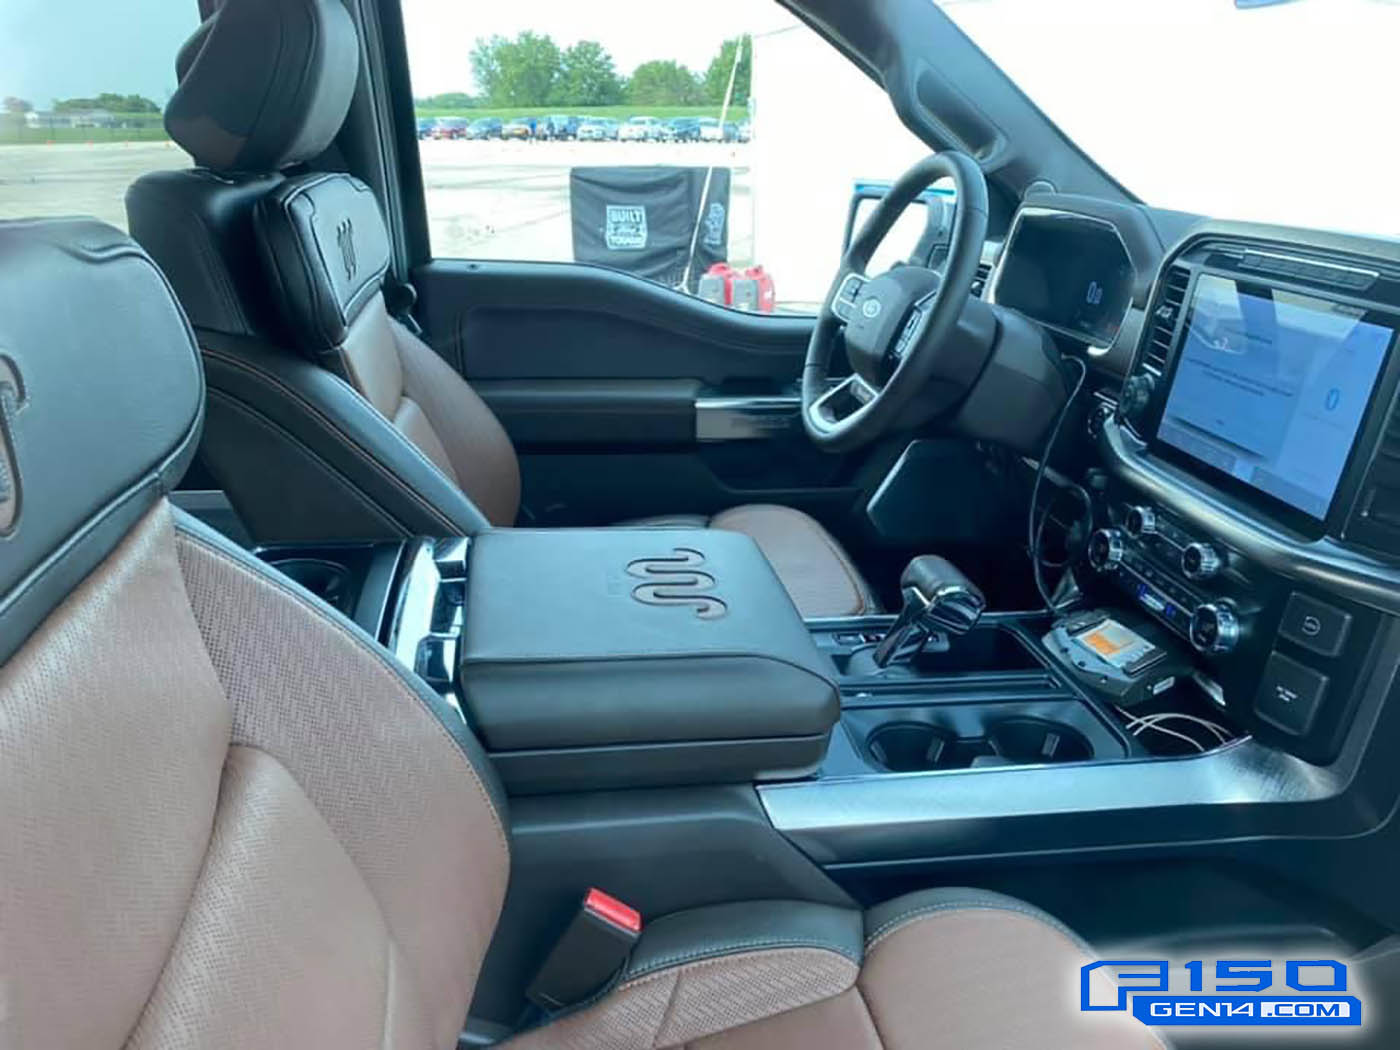 2021 F-150 King Ranch Interior.jpg